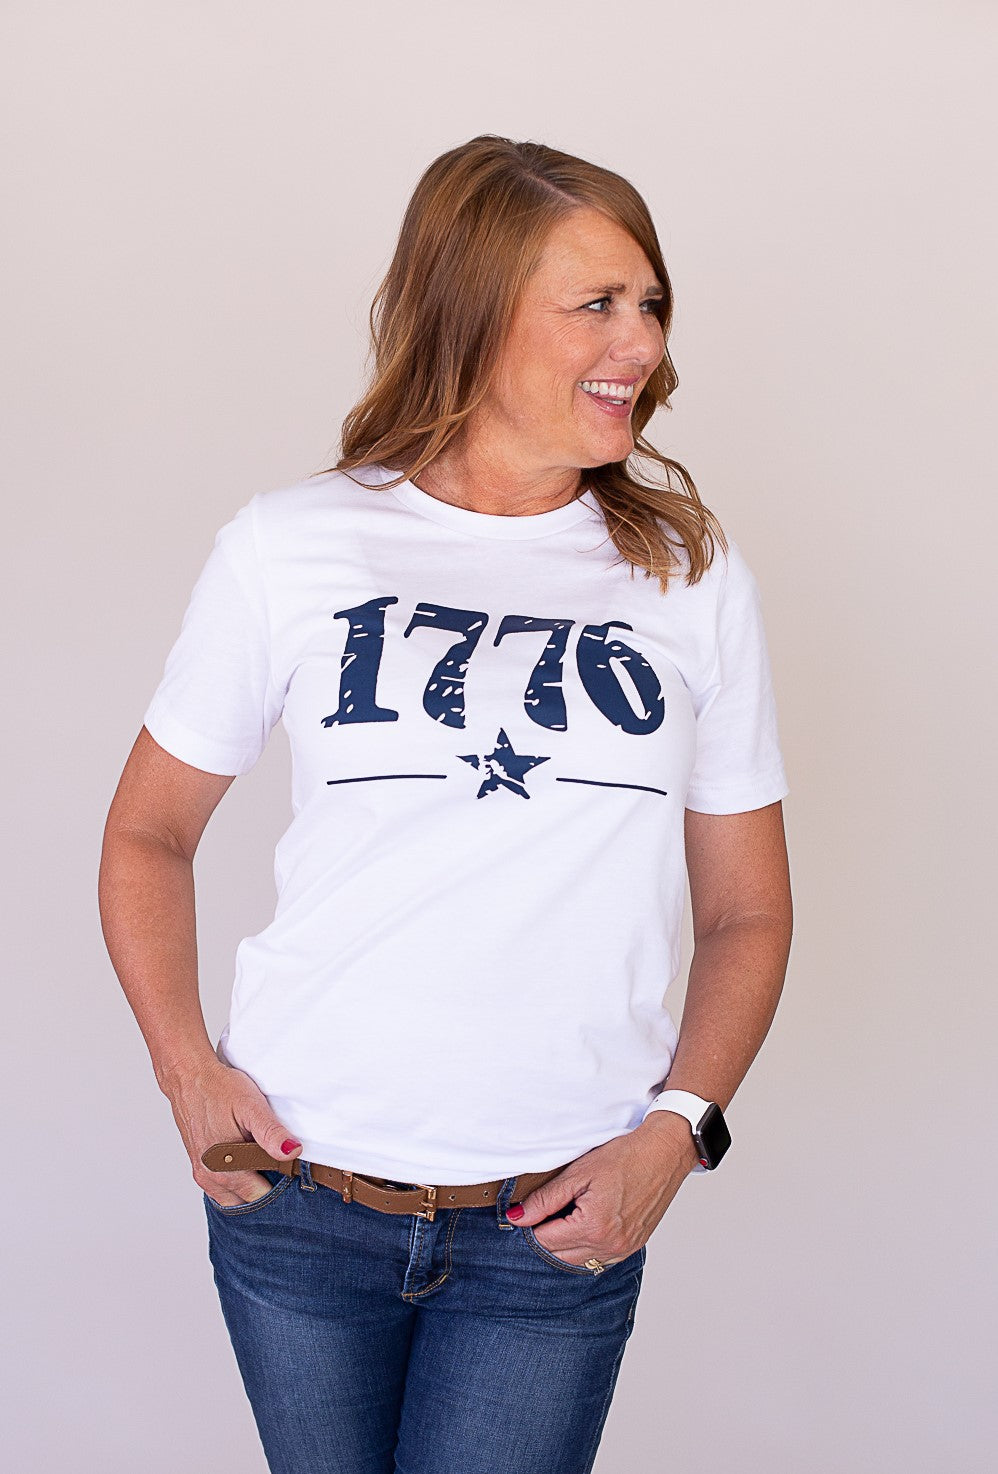 Independence Year T-Shirt